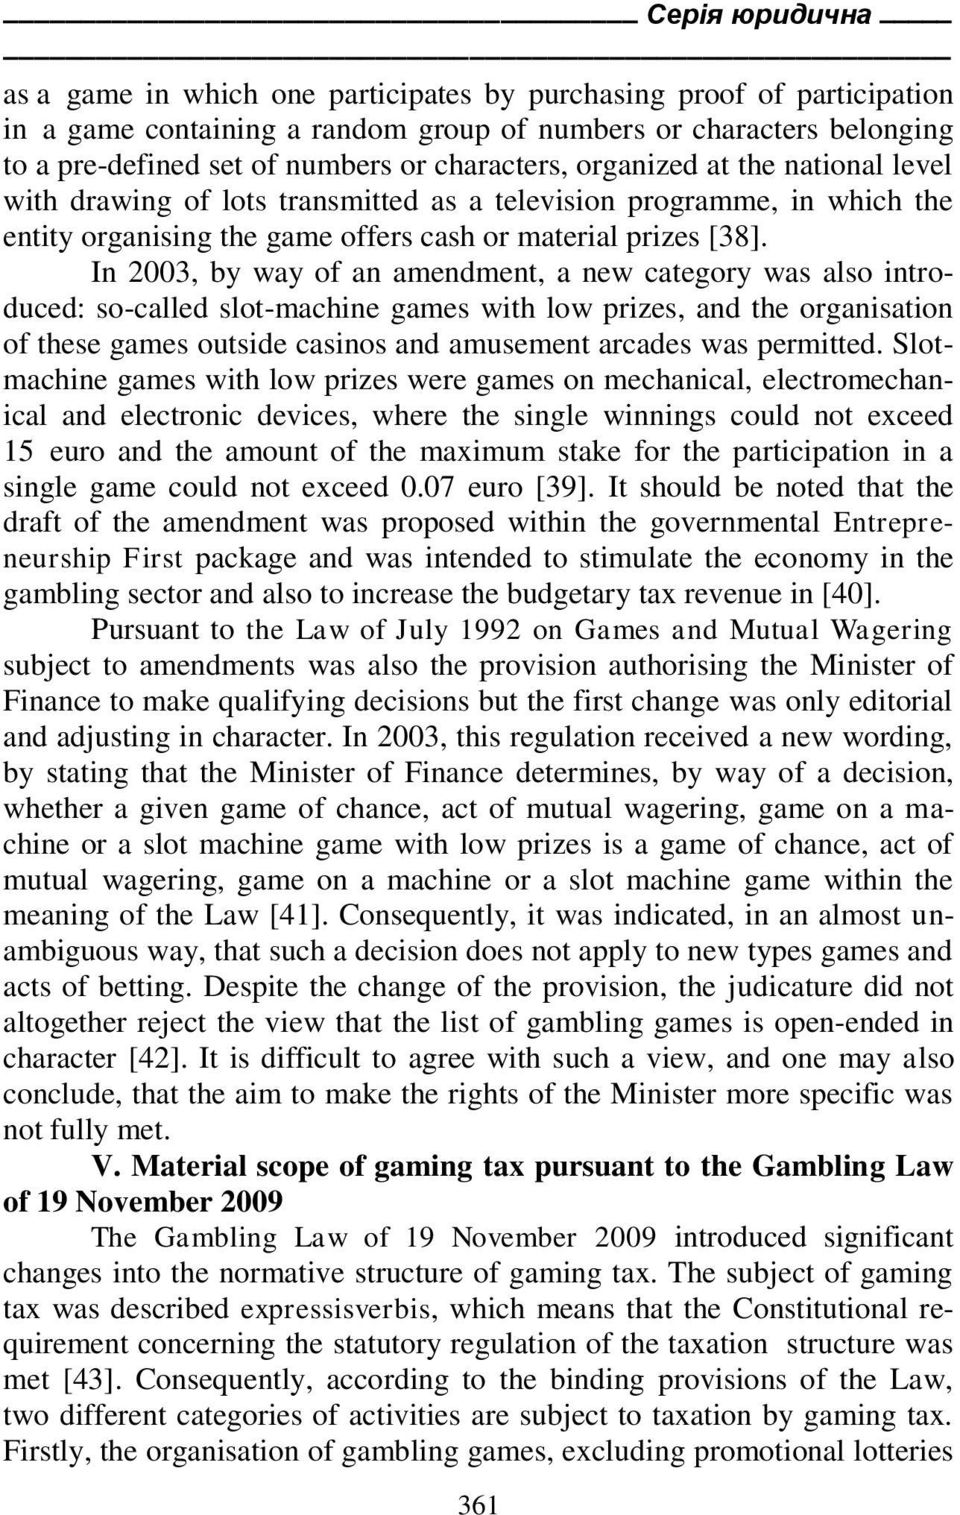 In 2003, by way of an amendment, a new category was also introduced: so-called slot-machine games with low prizes, and the organisation of these games outside casinos and amusement arcades was